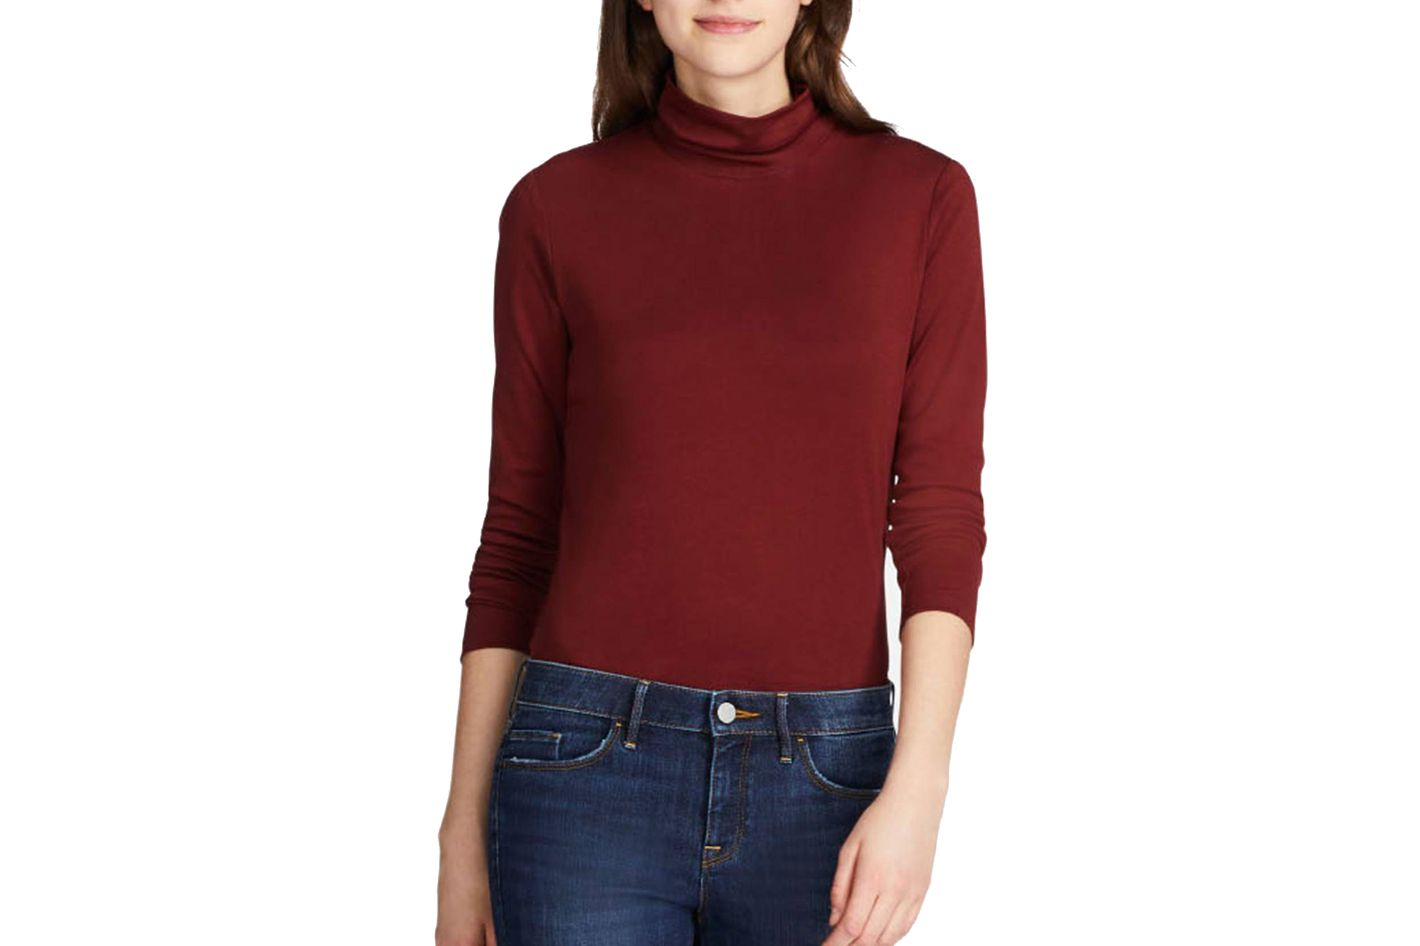 de75141cba965 Uniqlo Women s Supima Cotton Long-Sleeve Turtleneck